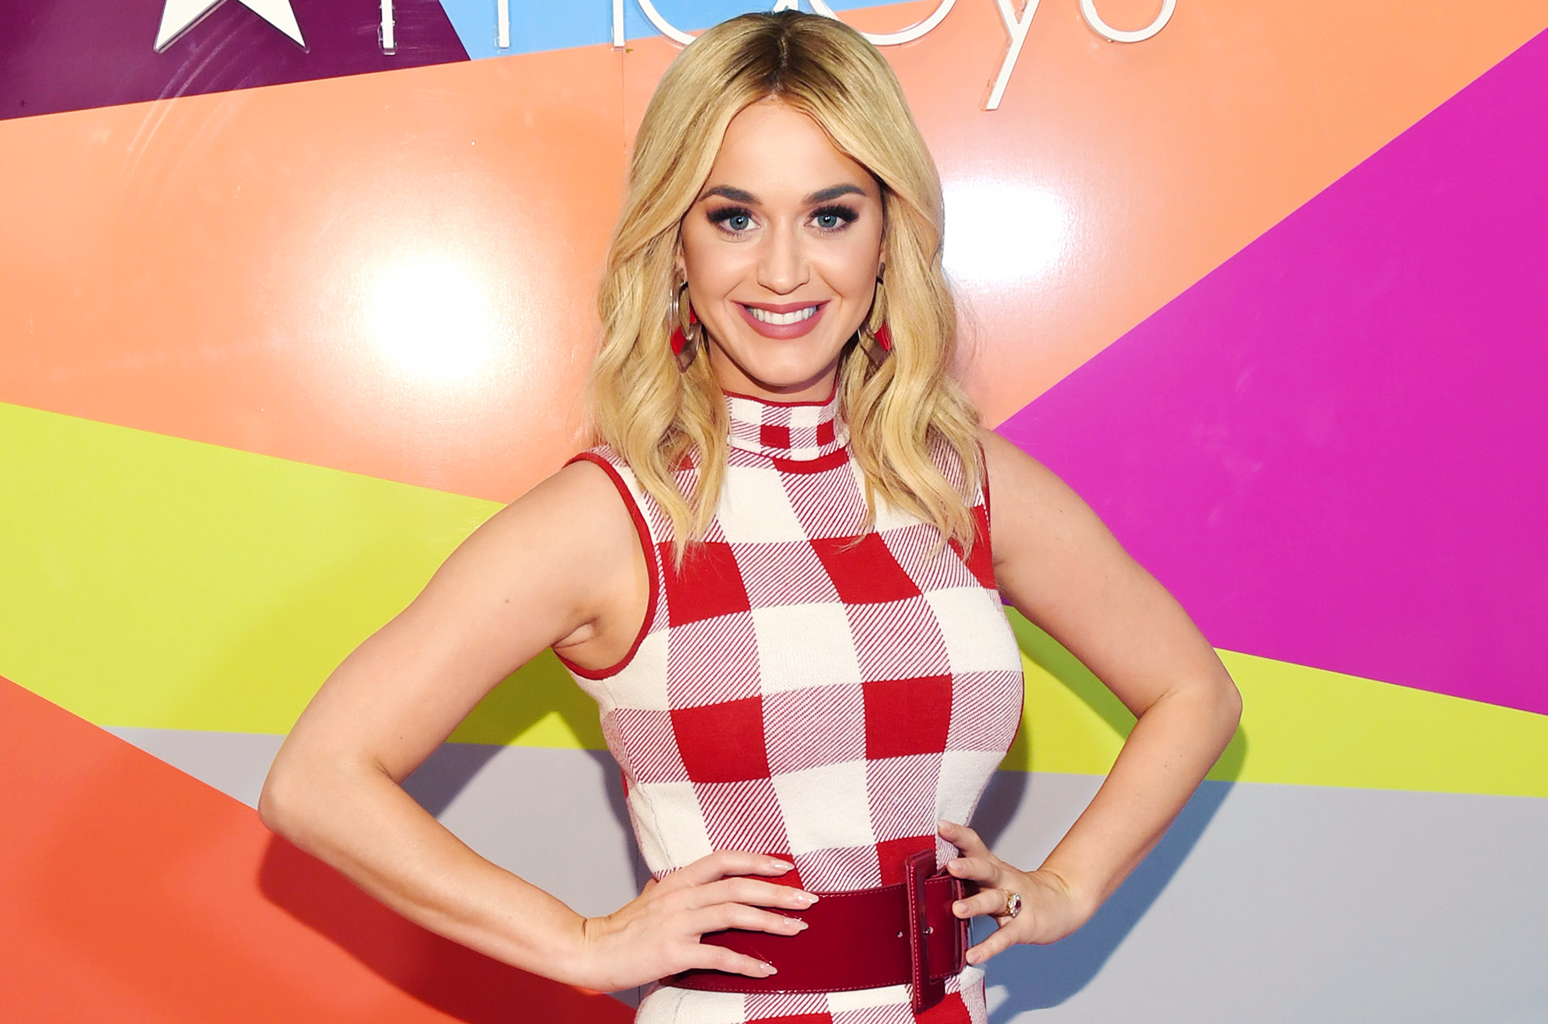 Billboard Hot 100 | 15 Interesting Katy Perry Facts You Never Knew | Her Beauty